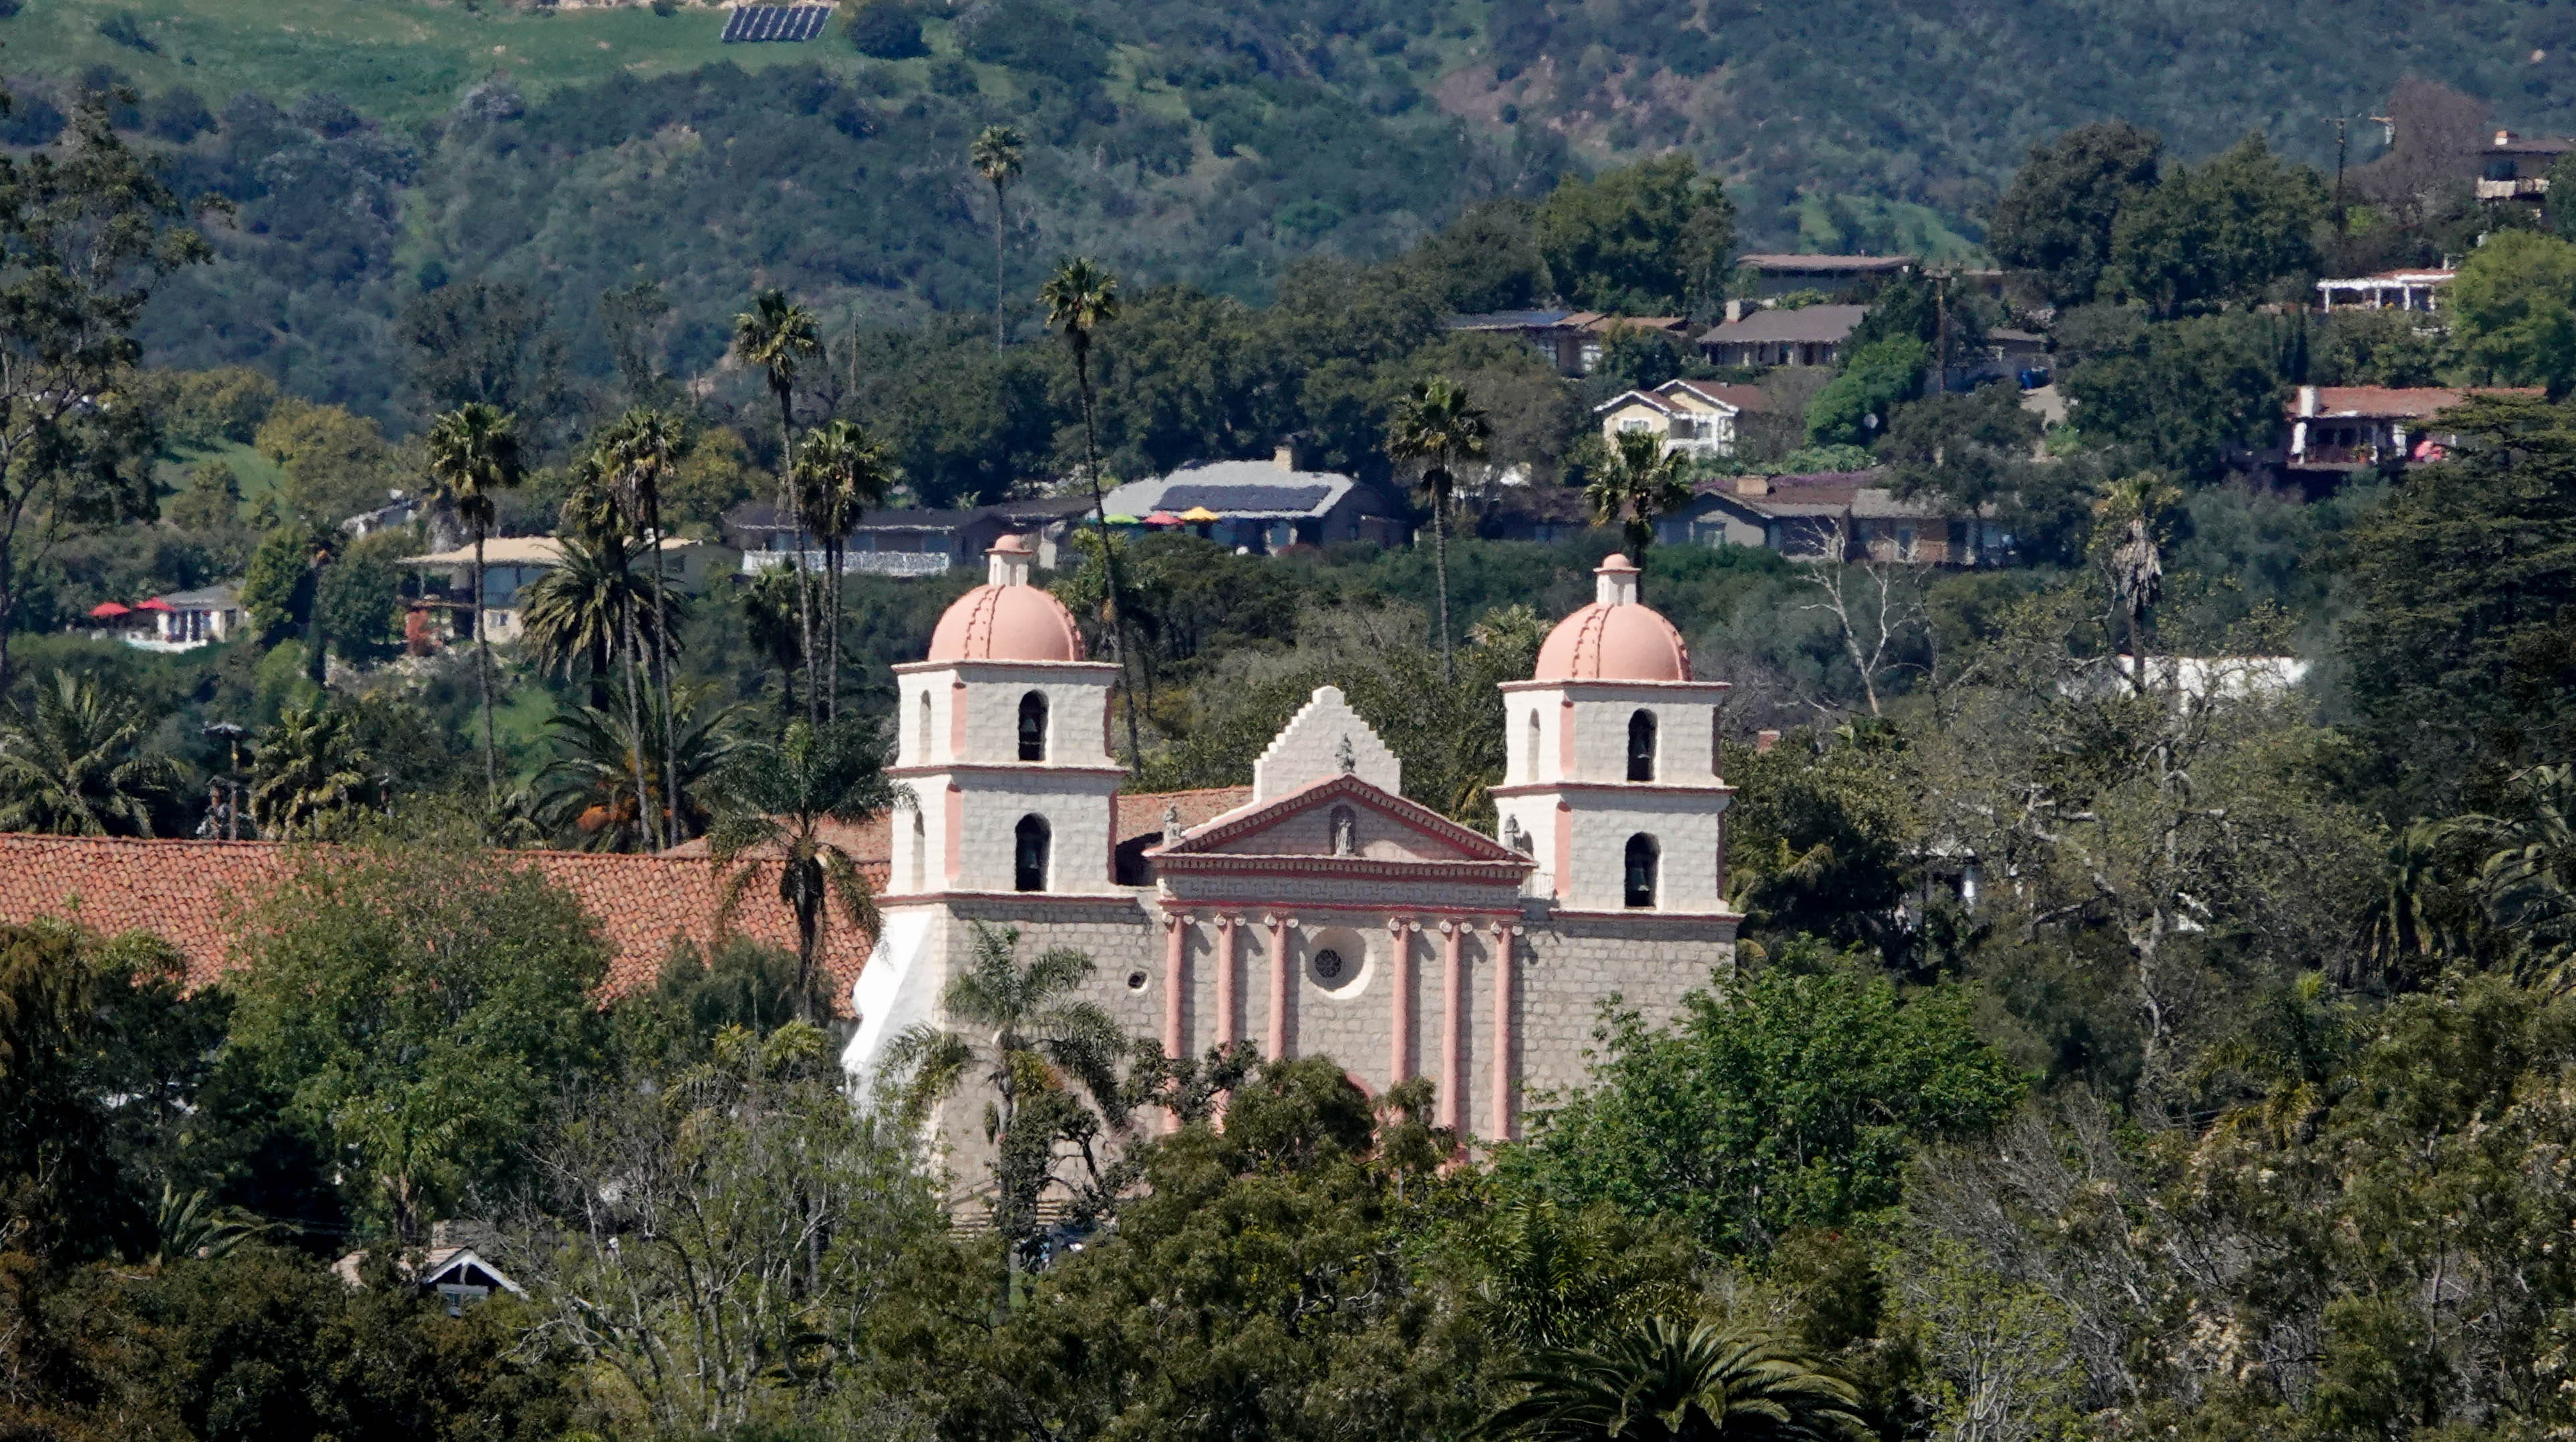 The Santa Barbara Mission, as seen from the roof of the County Courthouse.